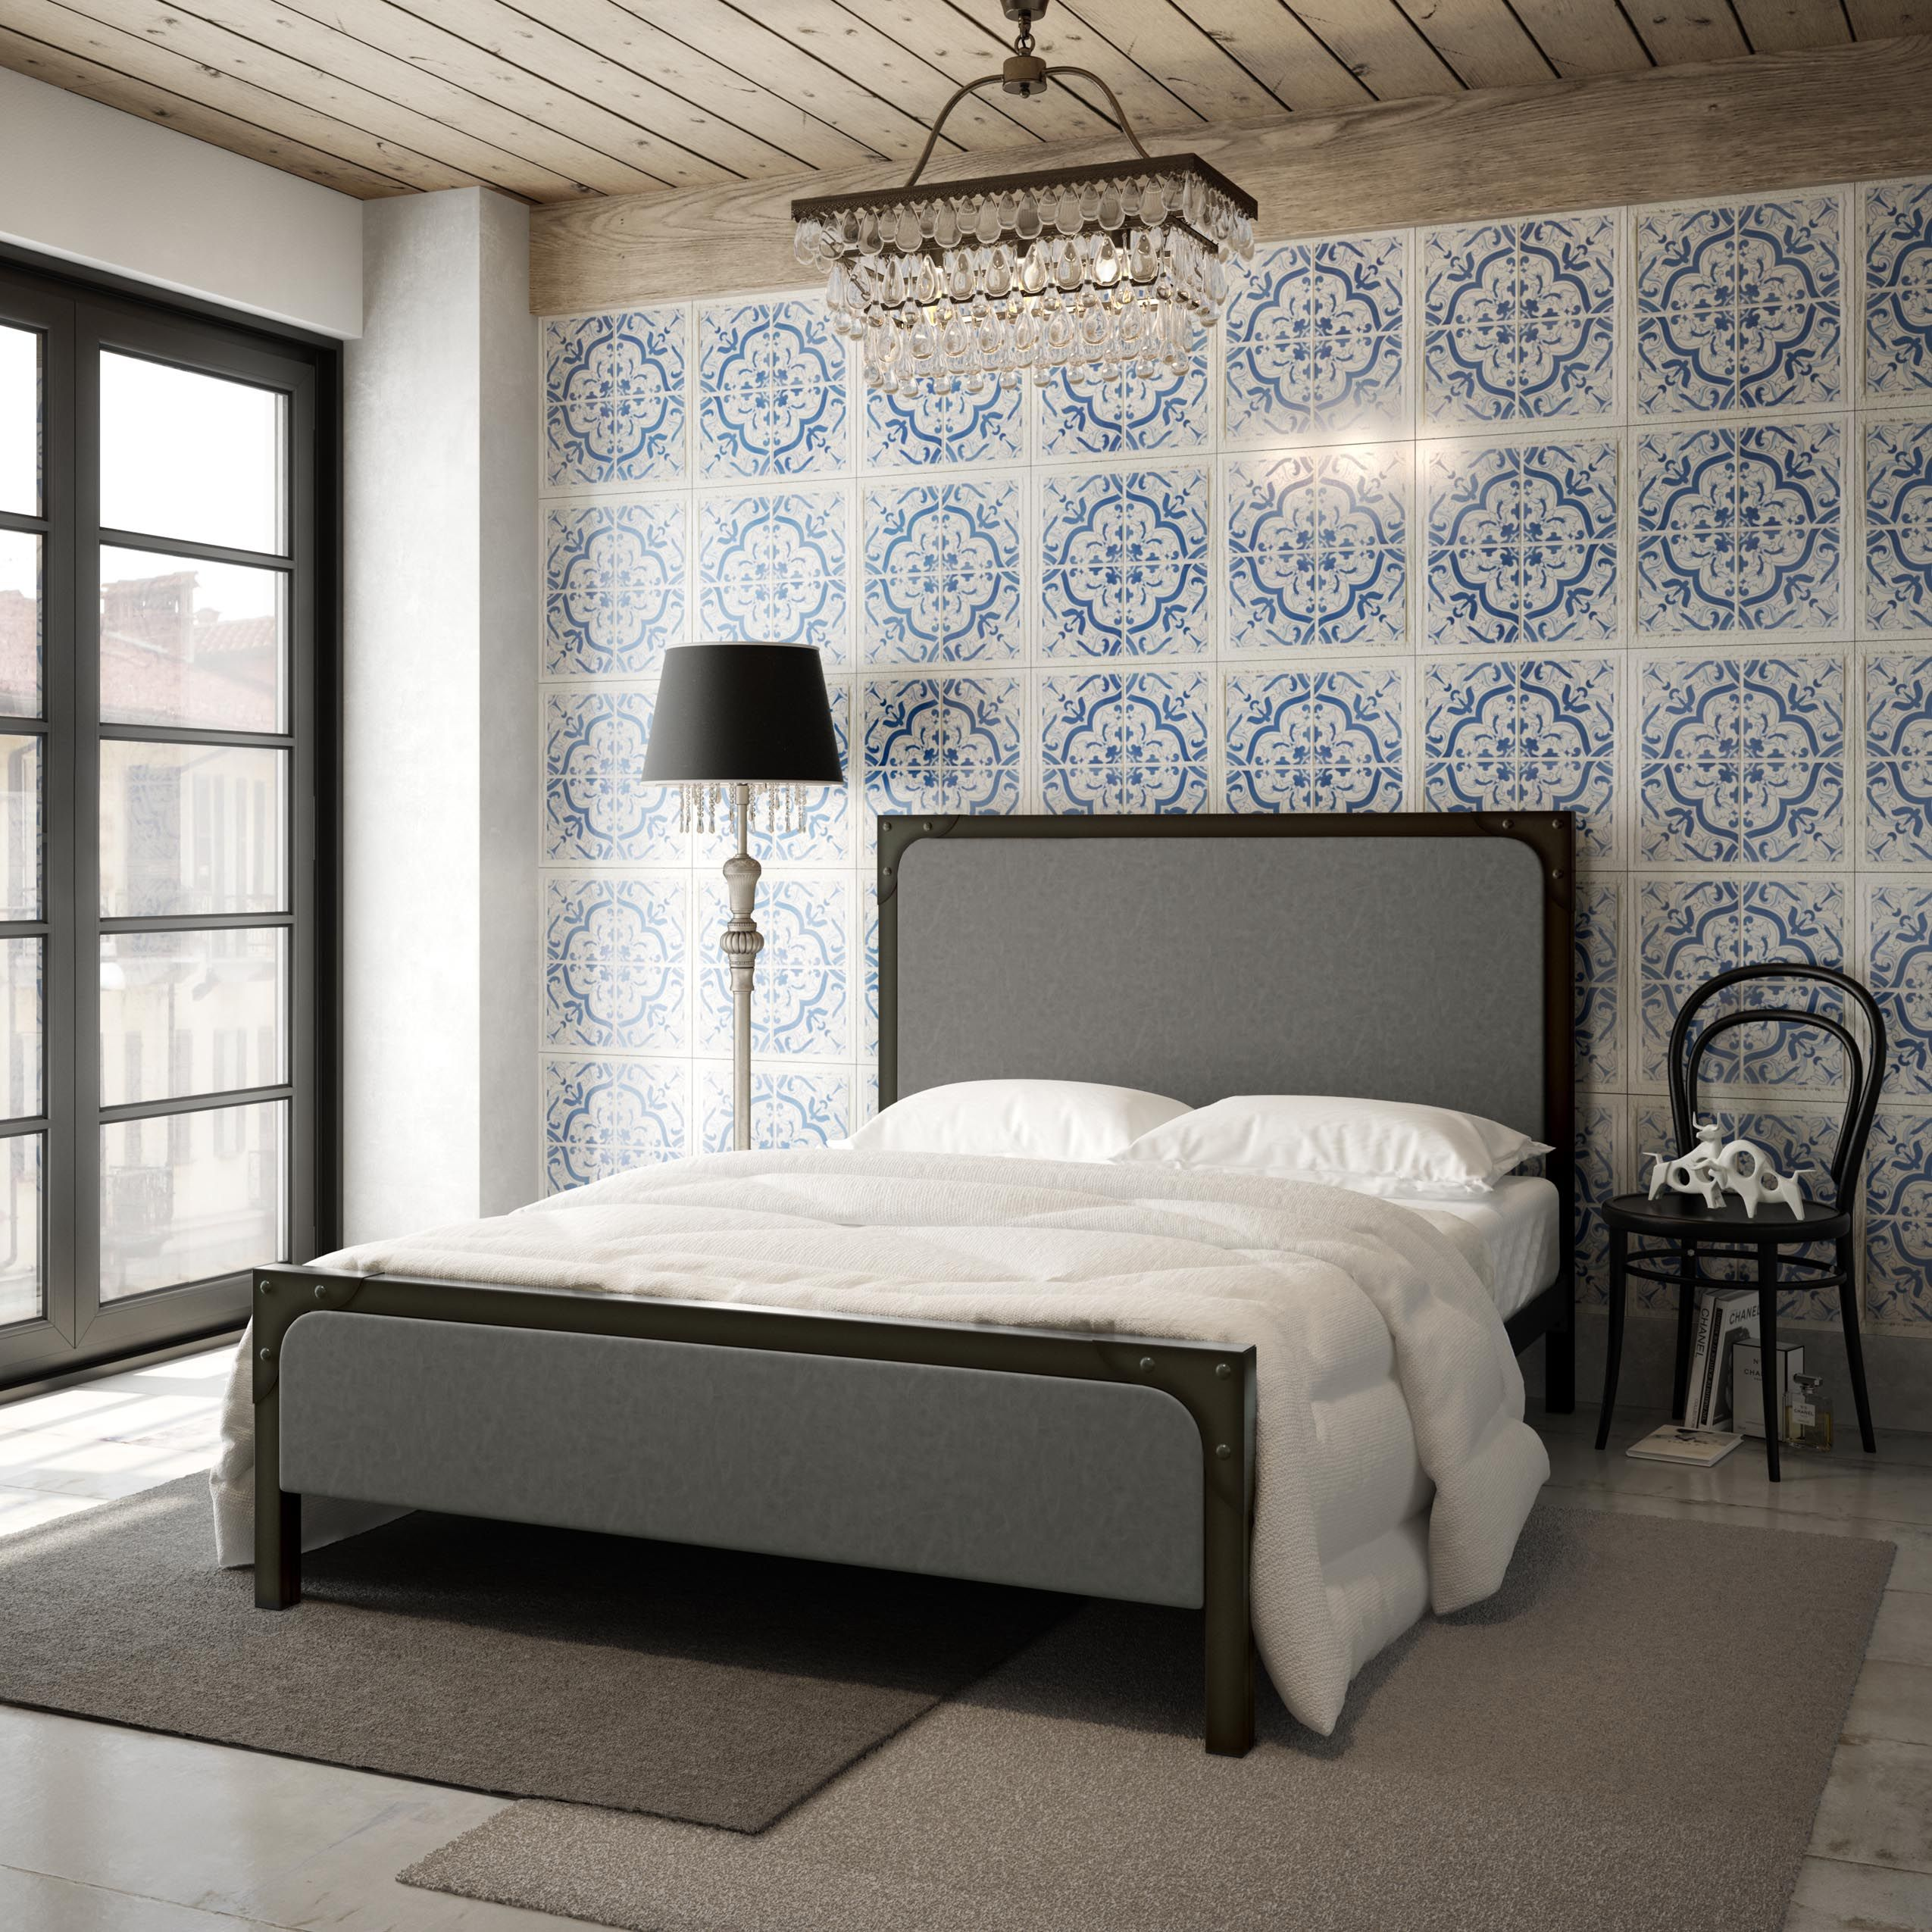 AMISCO - Corsica Bed (12401) - Furniture - Bedroom - Industrial collection - Contemporary - Regular footboard bed